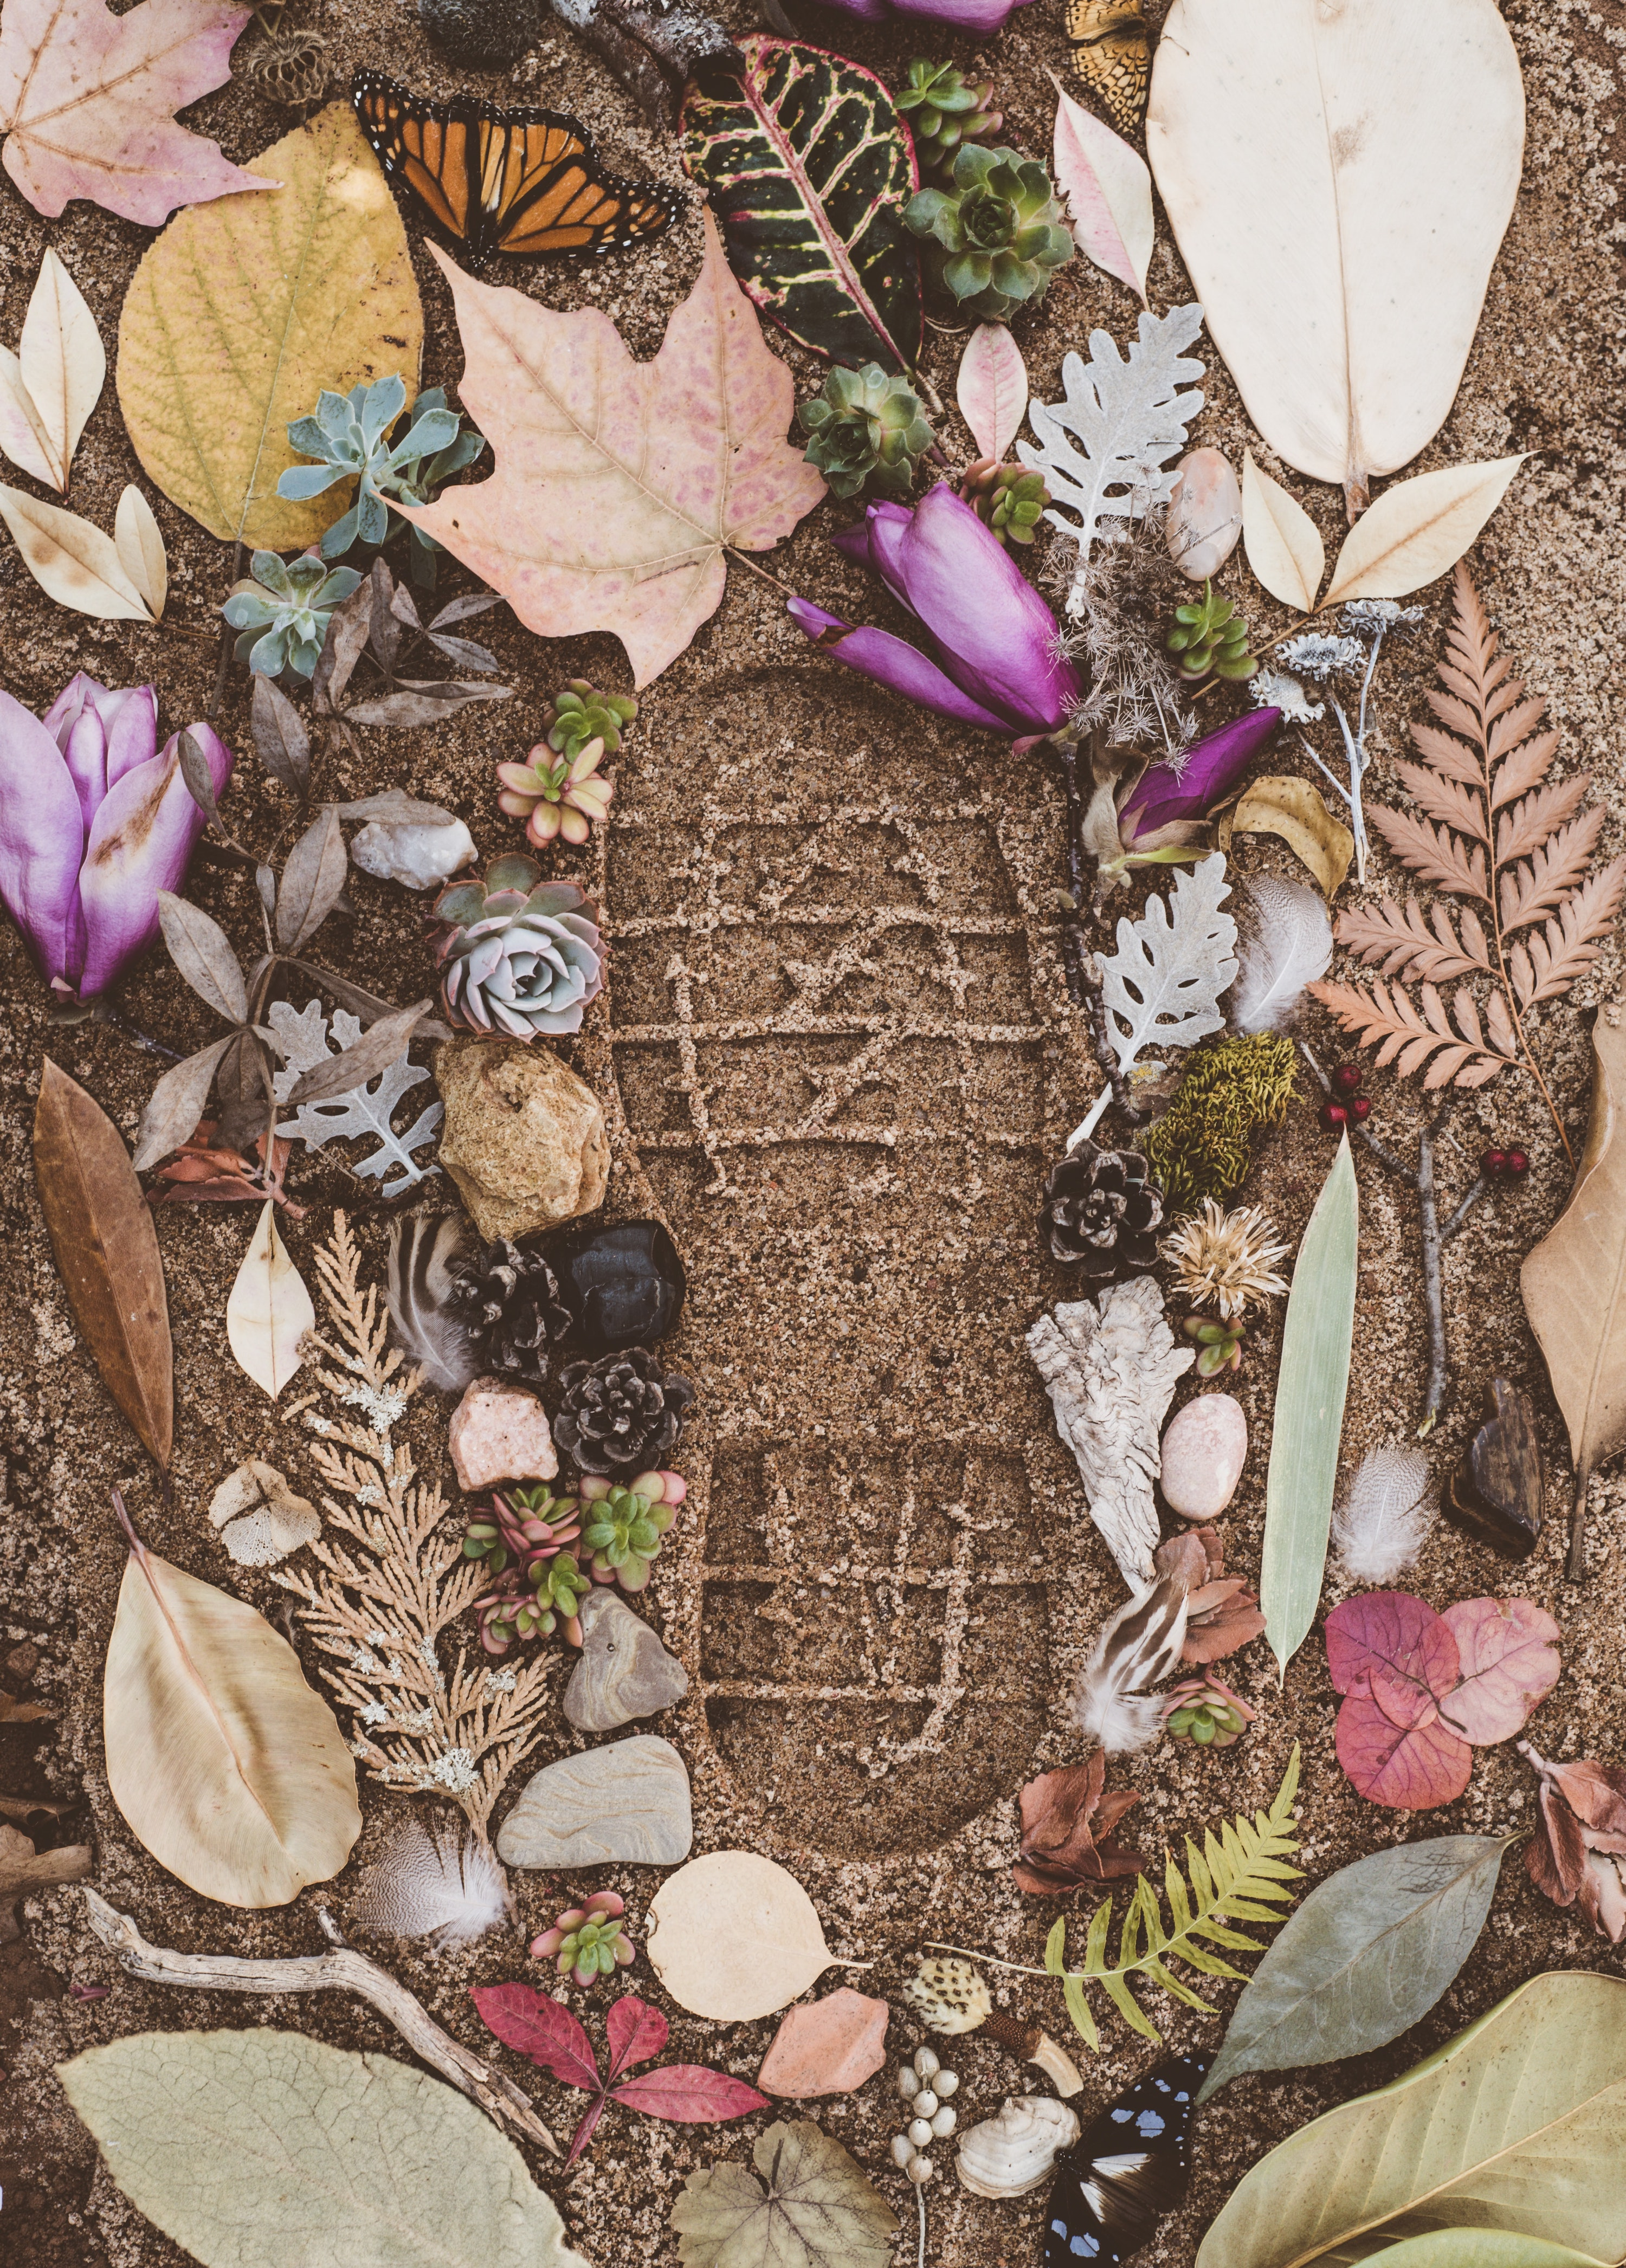 Close up of a footprint in sand, surrounded by autumn leaves